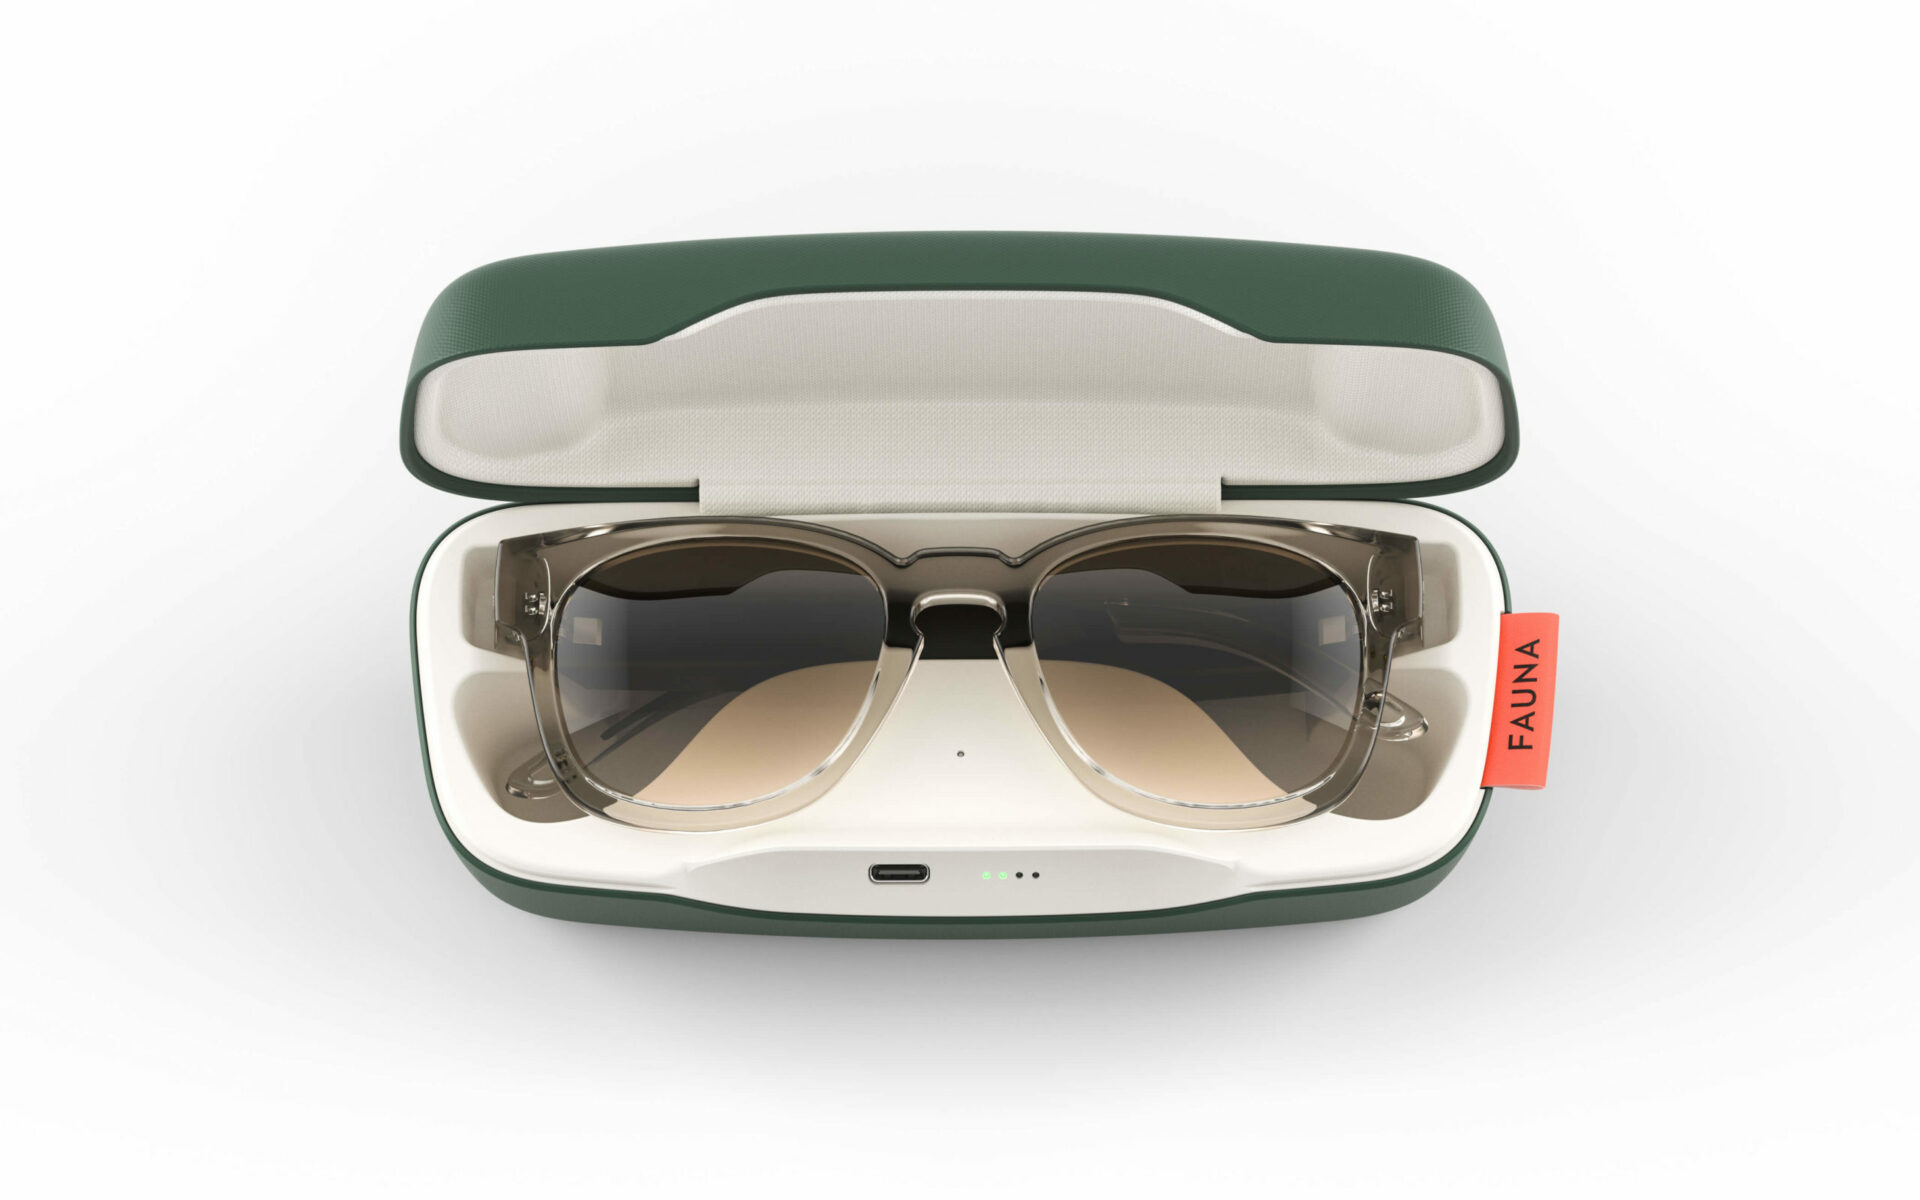 Fauna Spiro Transparent Brown music sunglasses in charging case